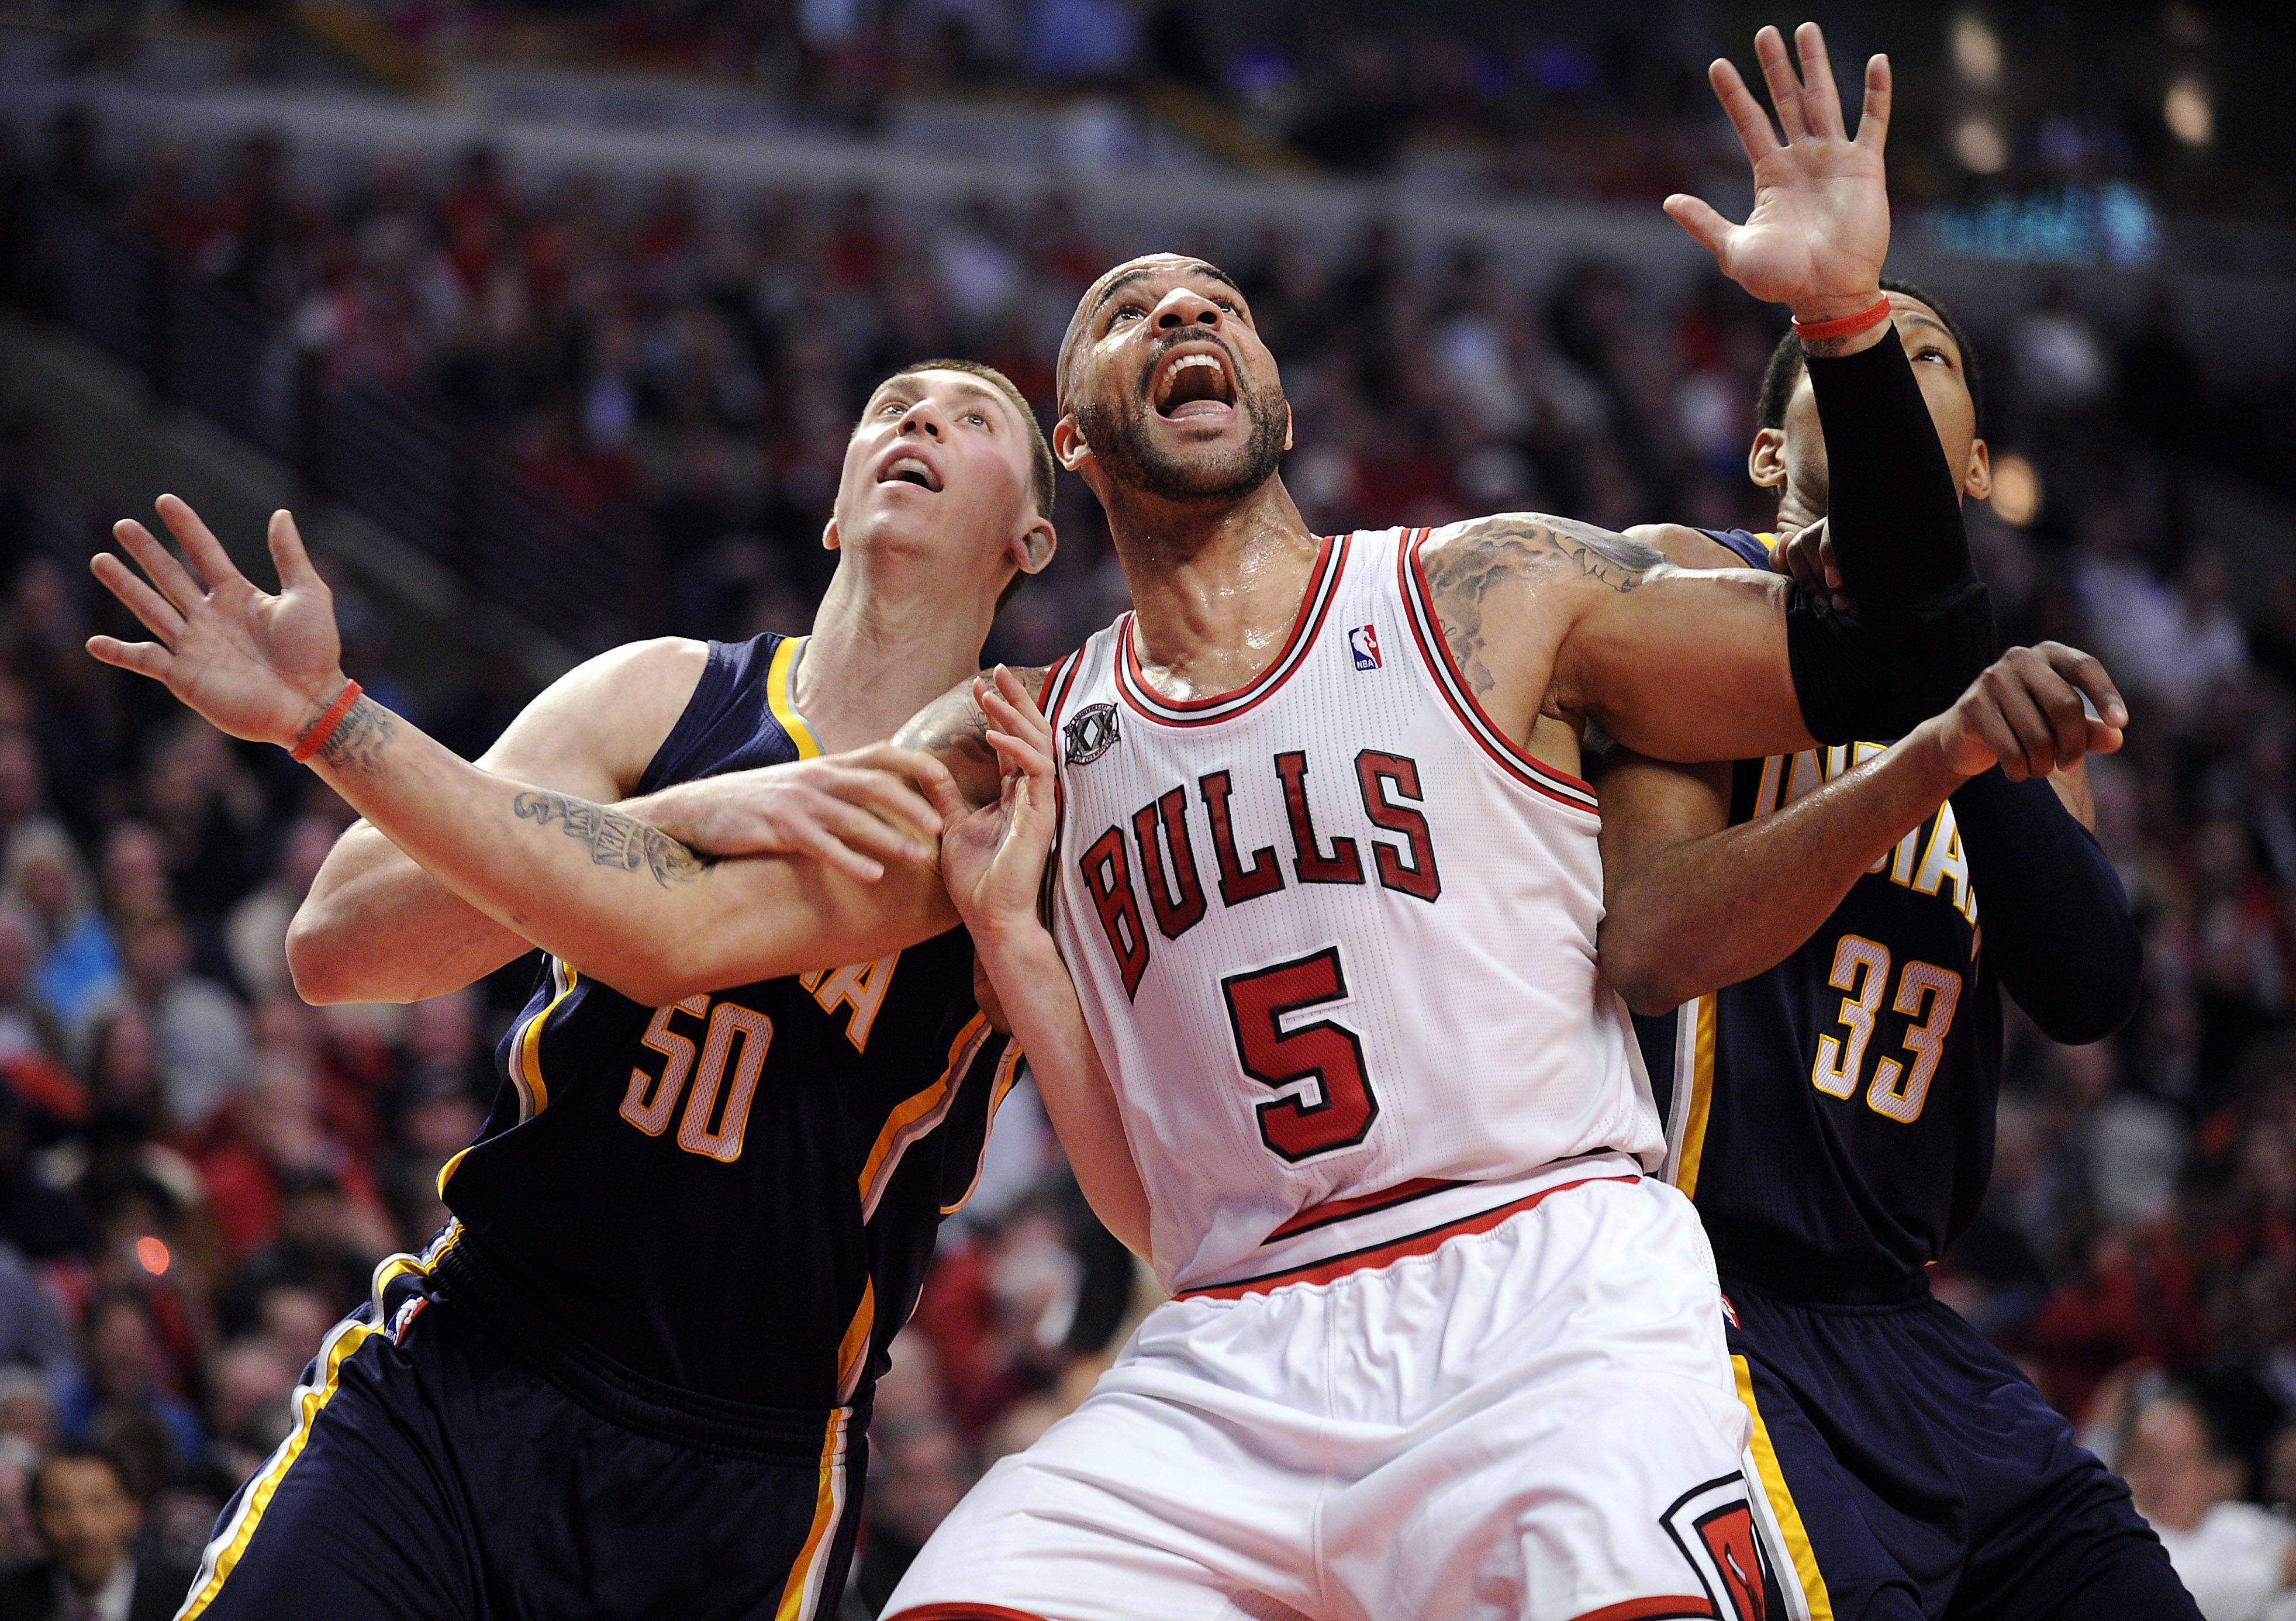 Carlos Boozer fends off Pacers Roy Hibbert and Josh McRoberts for a rebound in the second quarter.